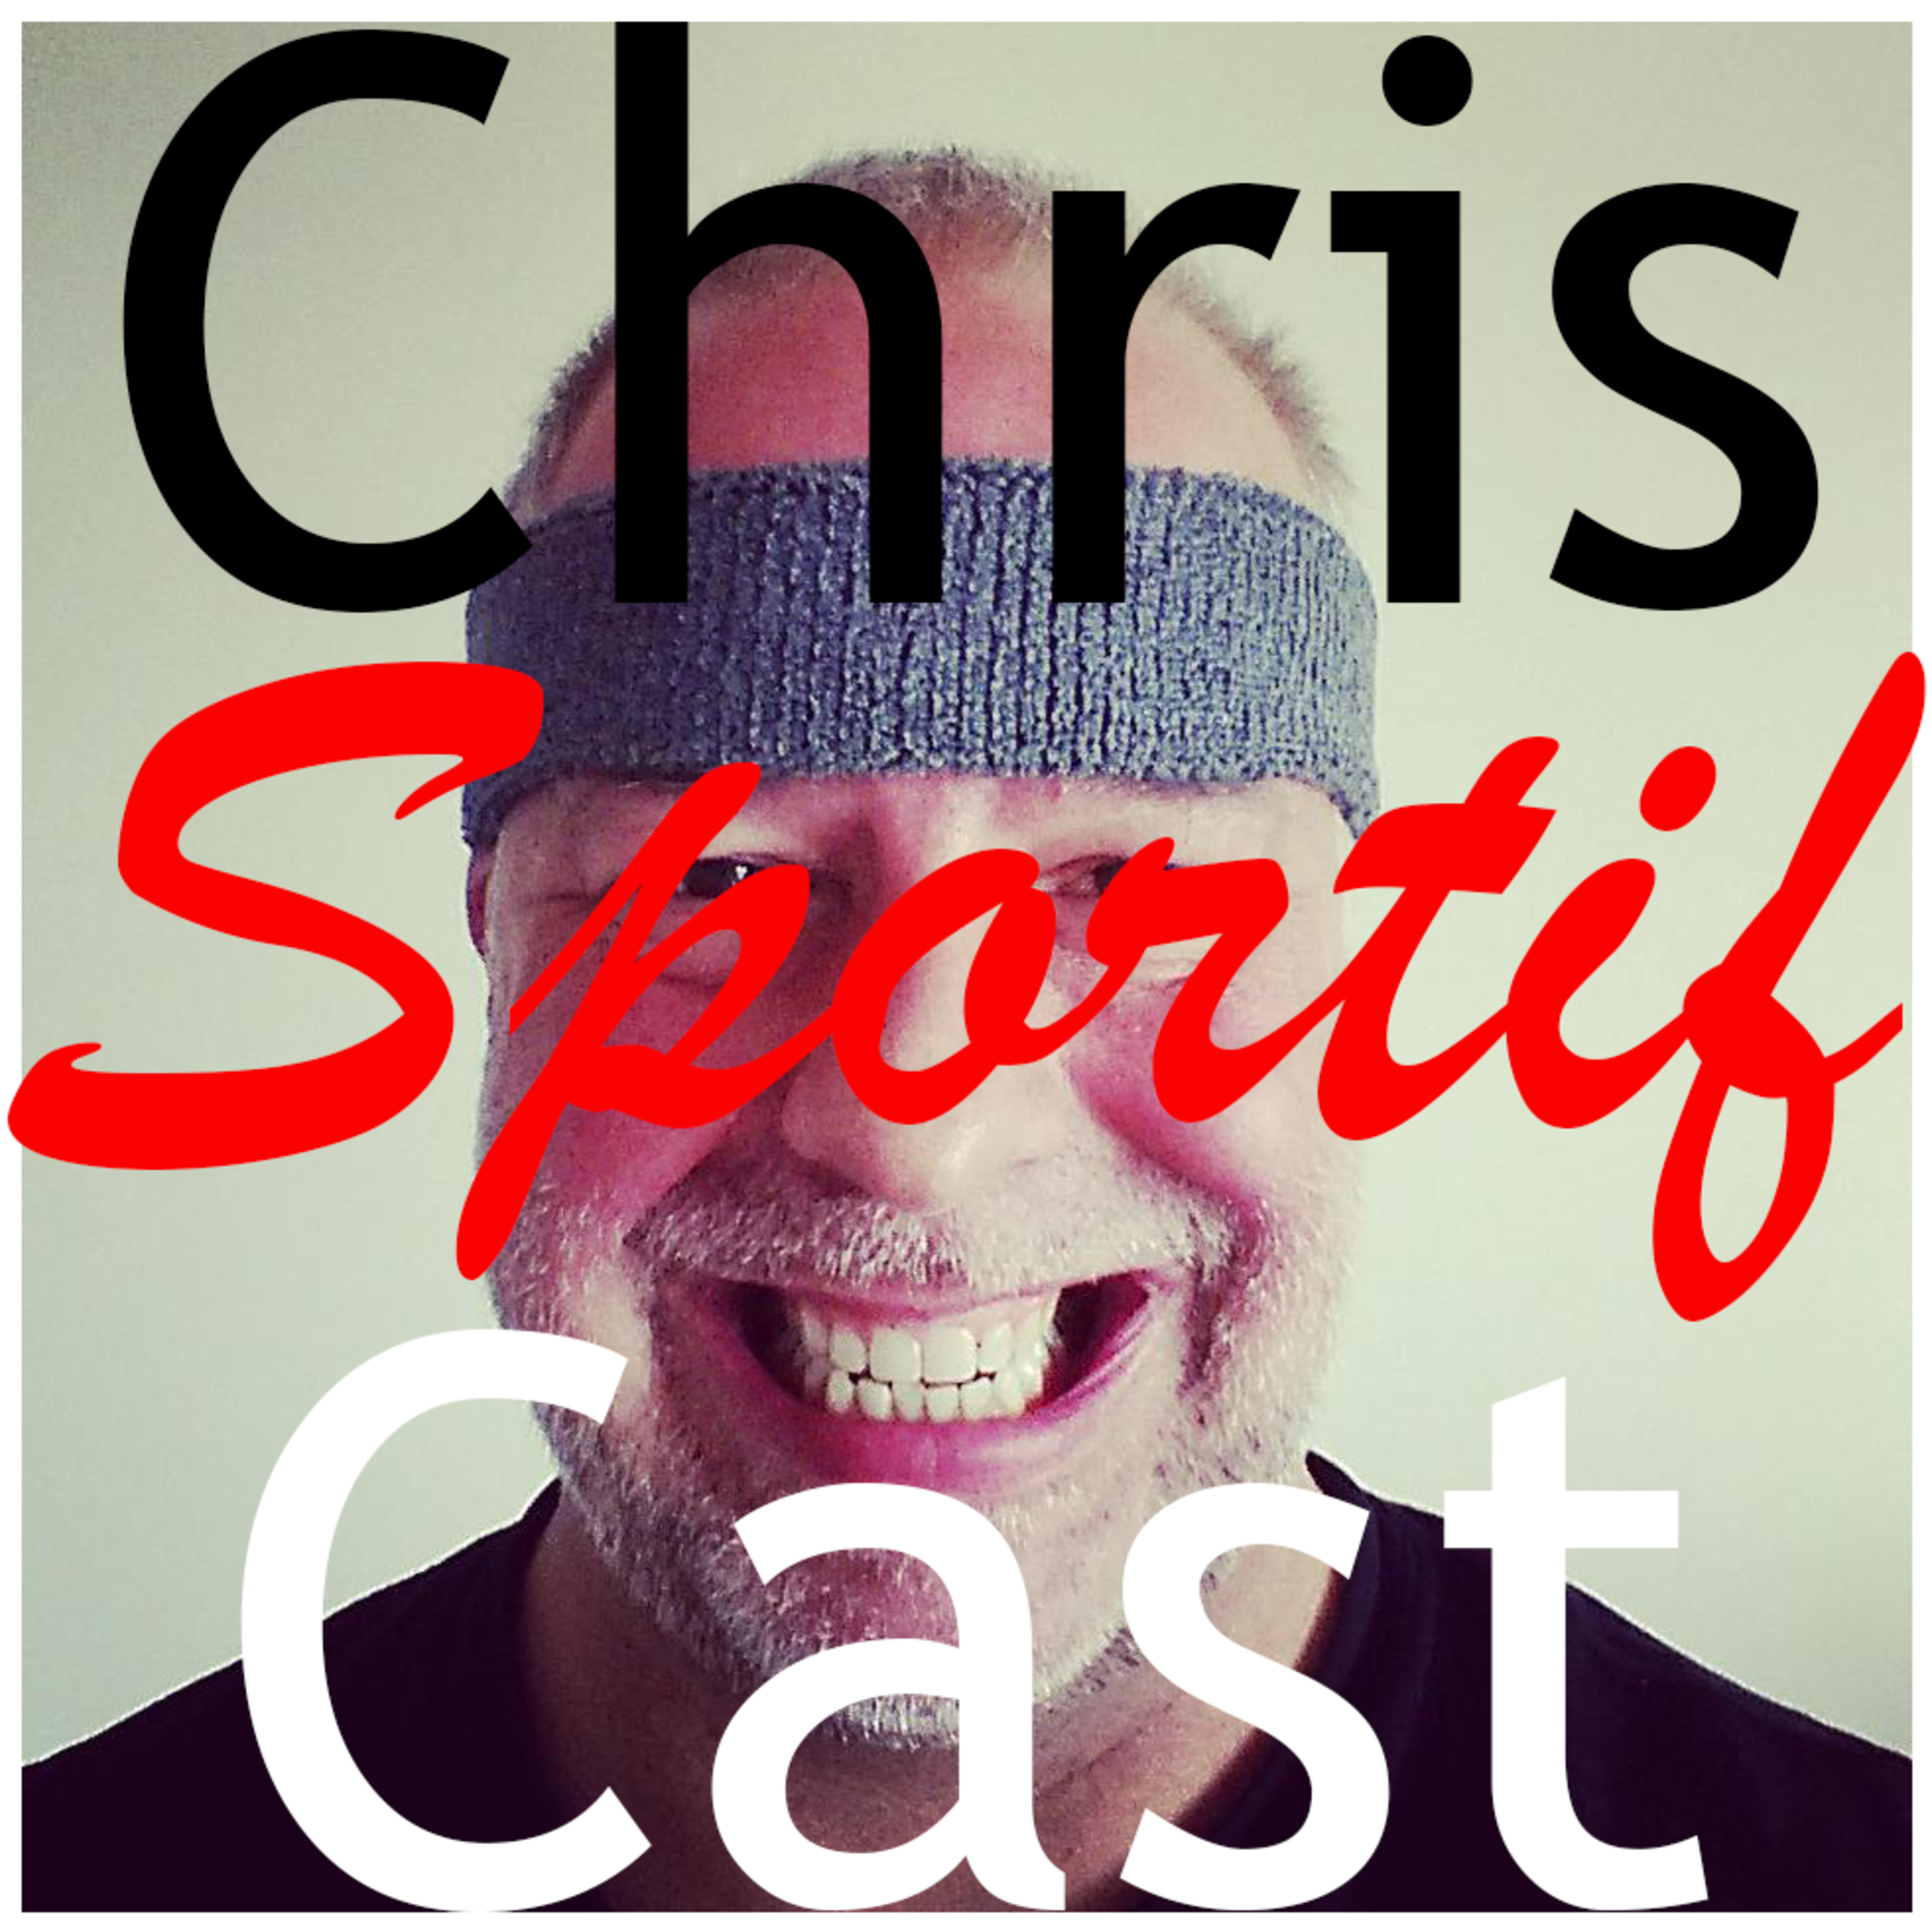 ChrisCast Episode 1: Sportif (or, how the hell did I get like this, eh, FFS!?)